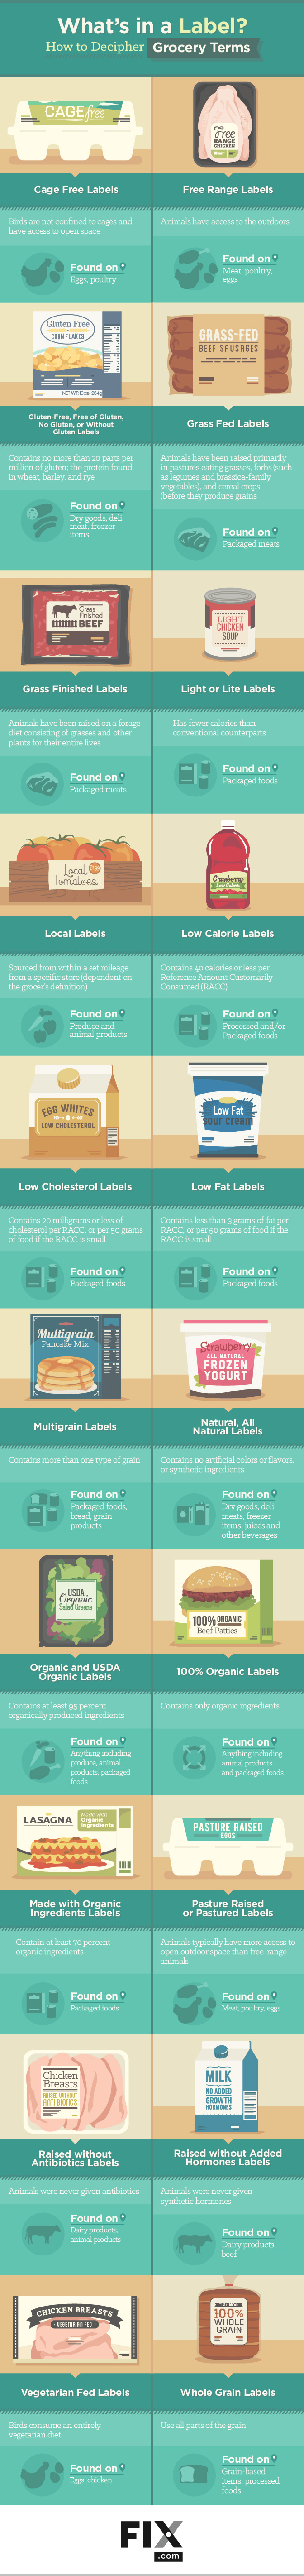 What's in a Label? How to Decipher Grocery Terms